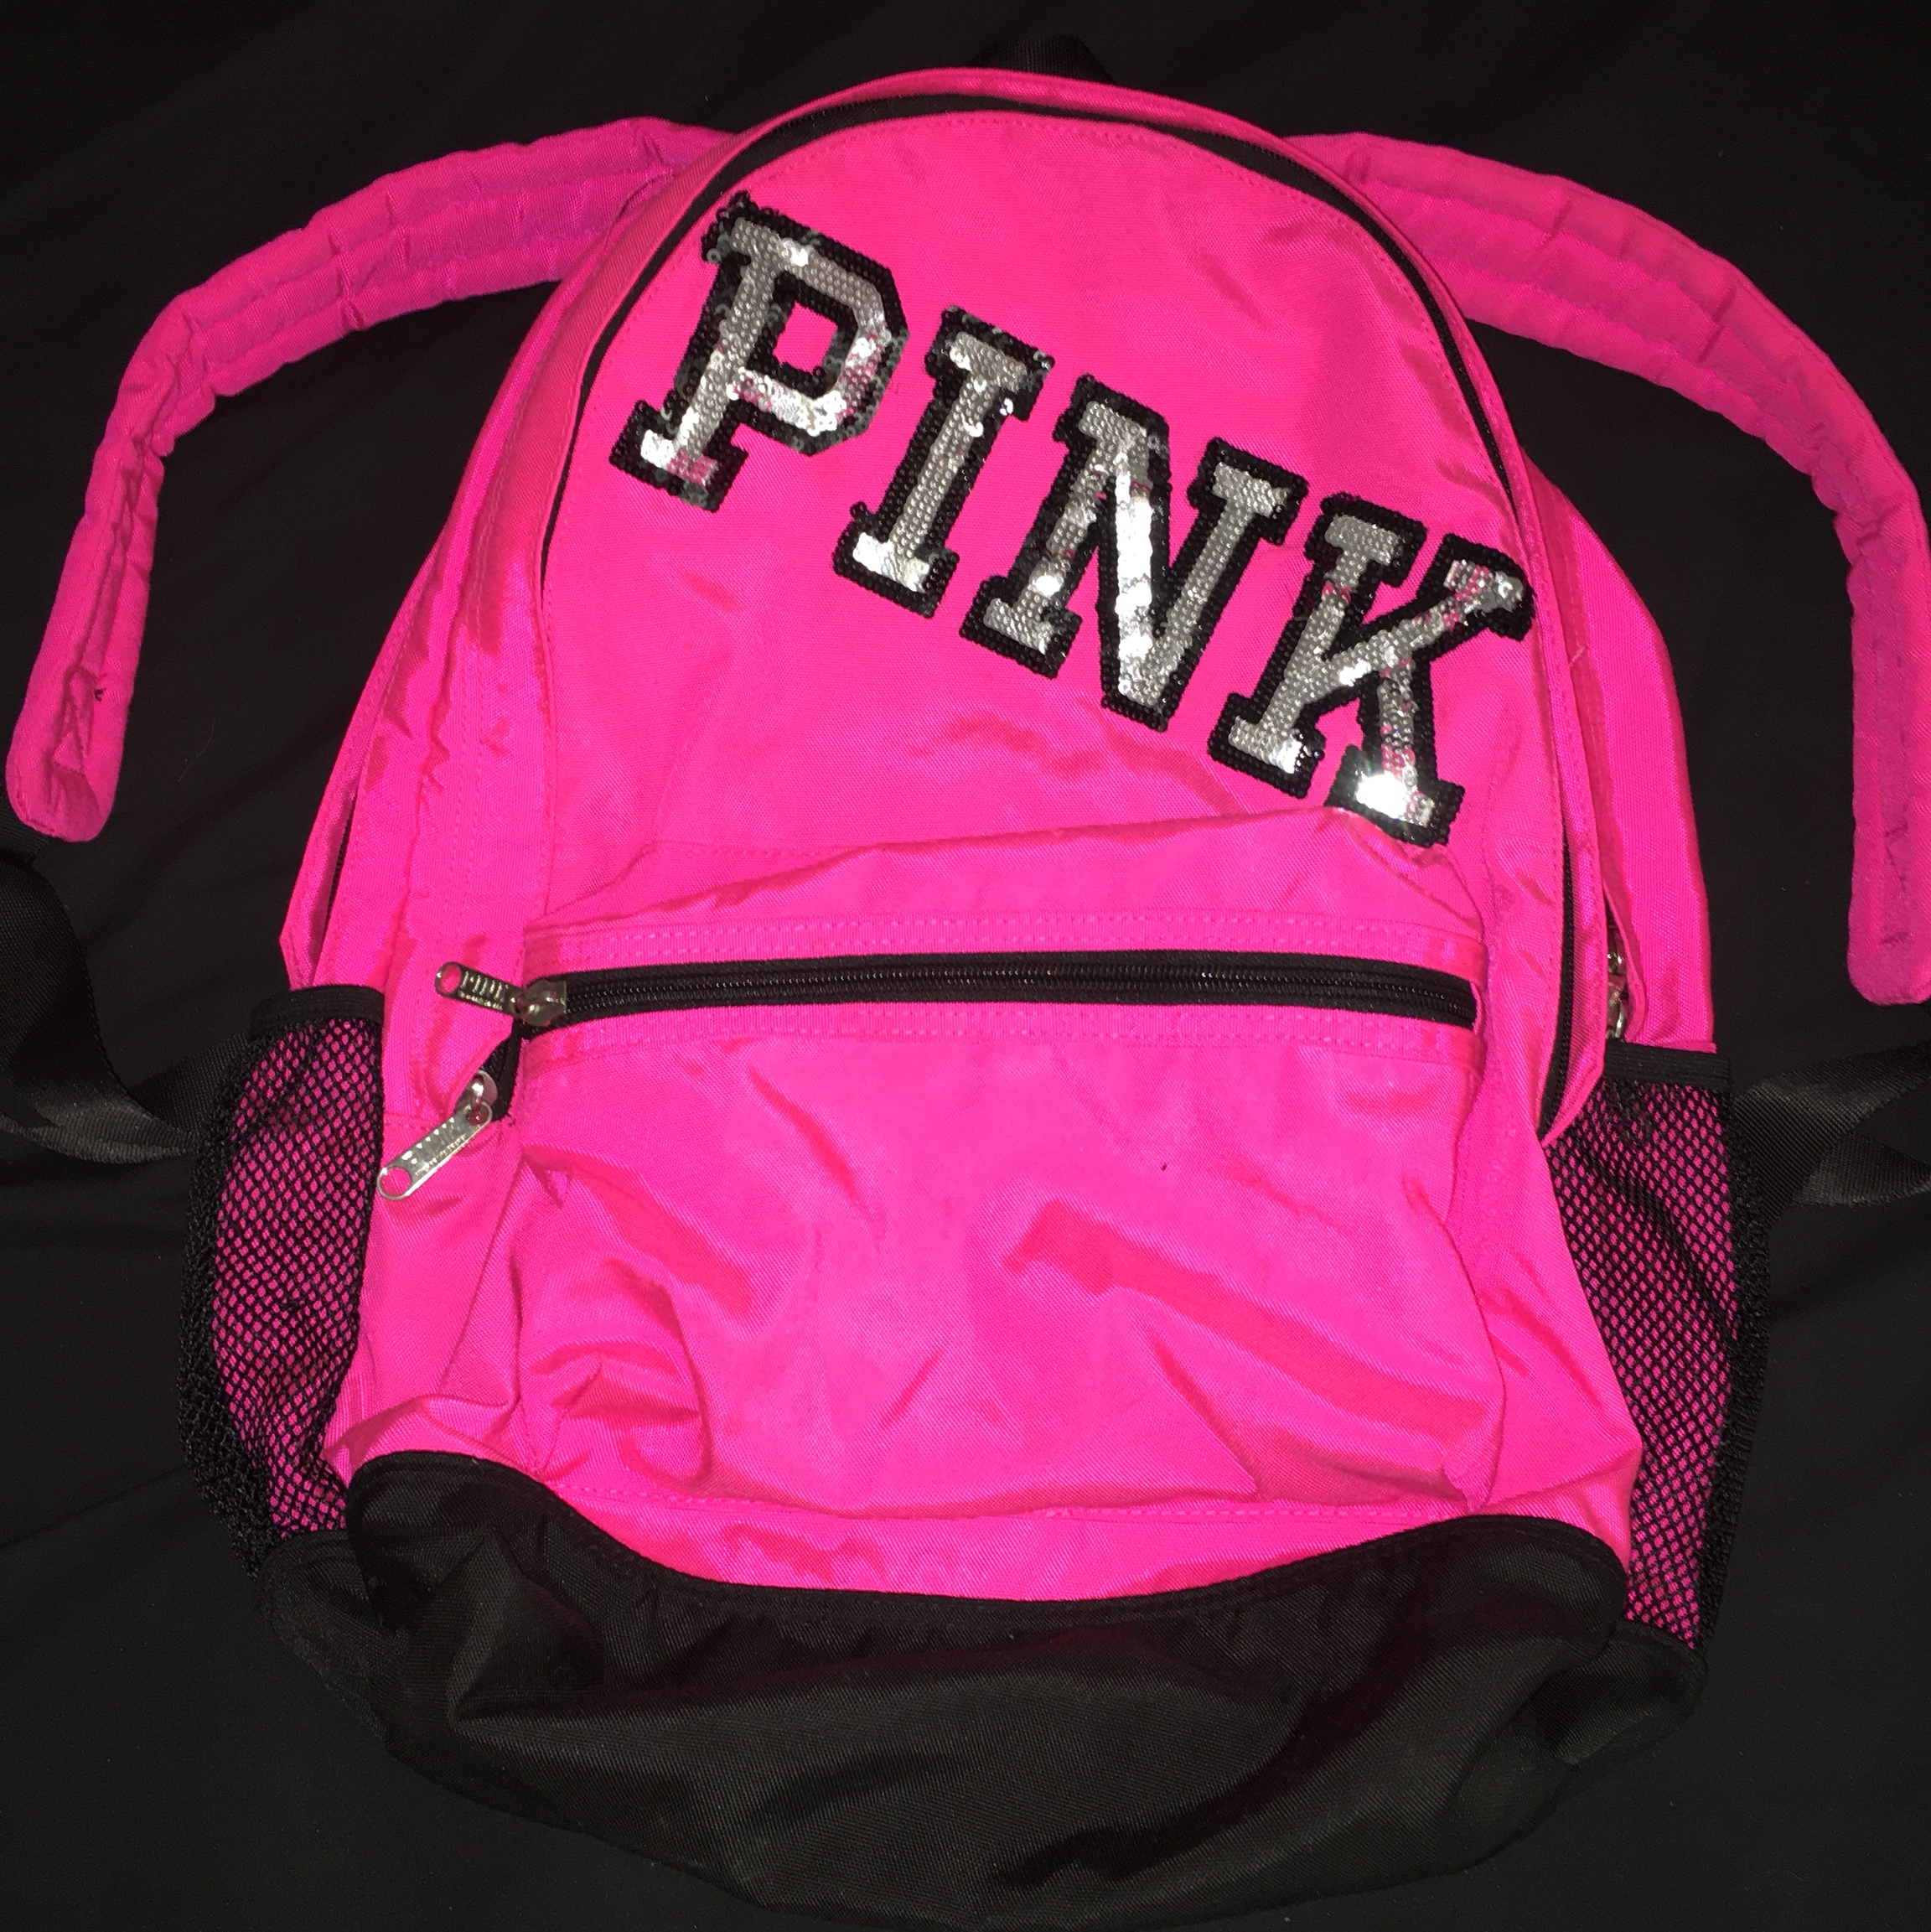 02d5beda0a2e3 Victoria Secret PINK backpack Bright pink with... - Depop